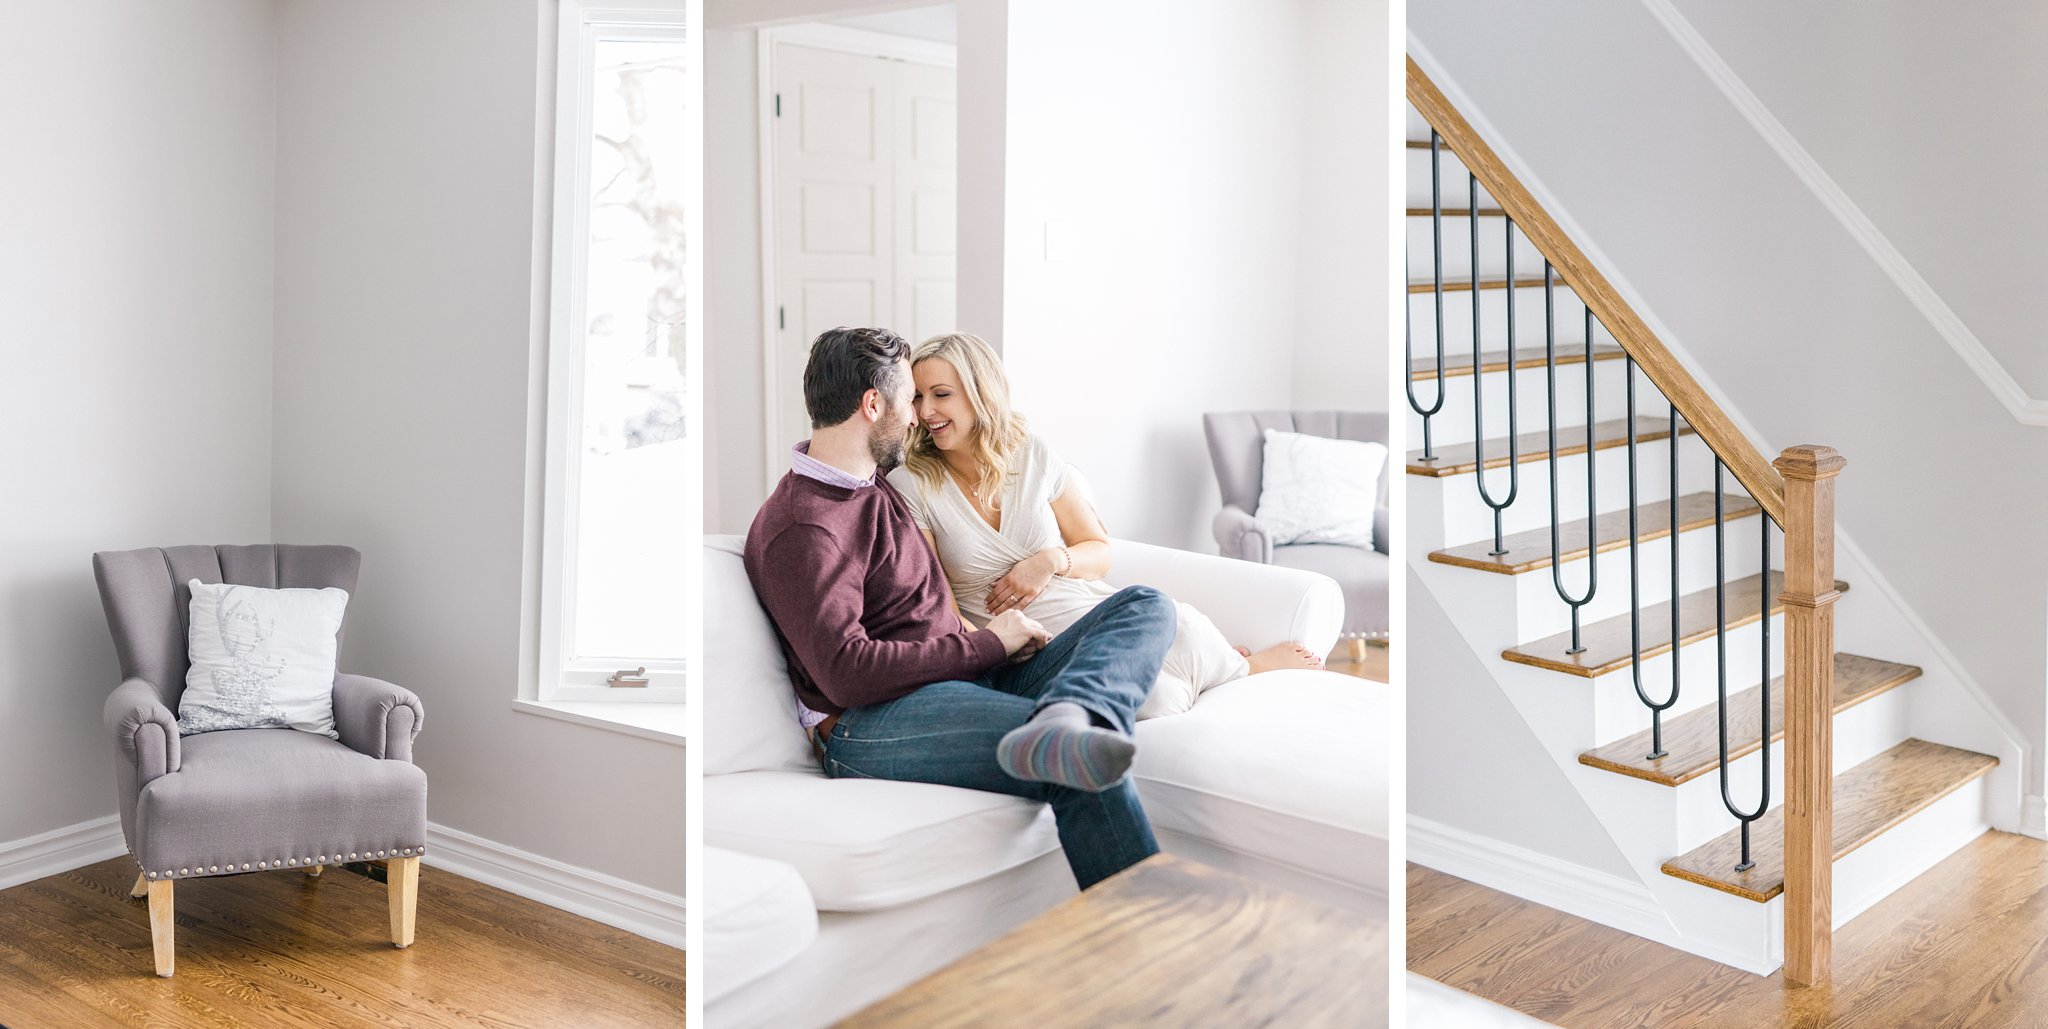 Modern home decor light and airy lifestyle maternity photos Ottawa